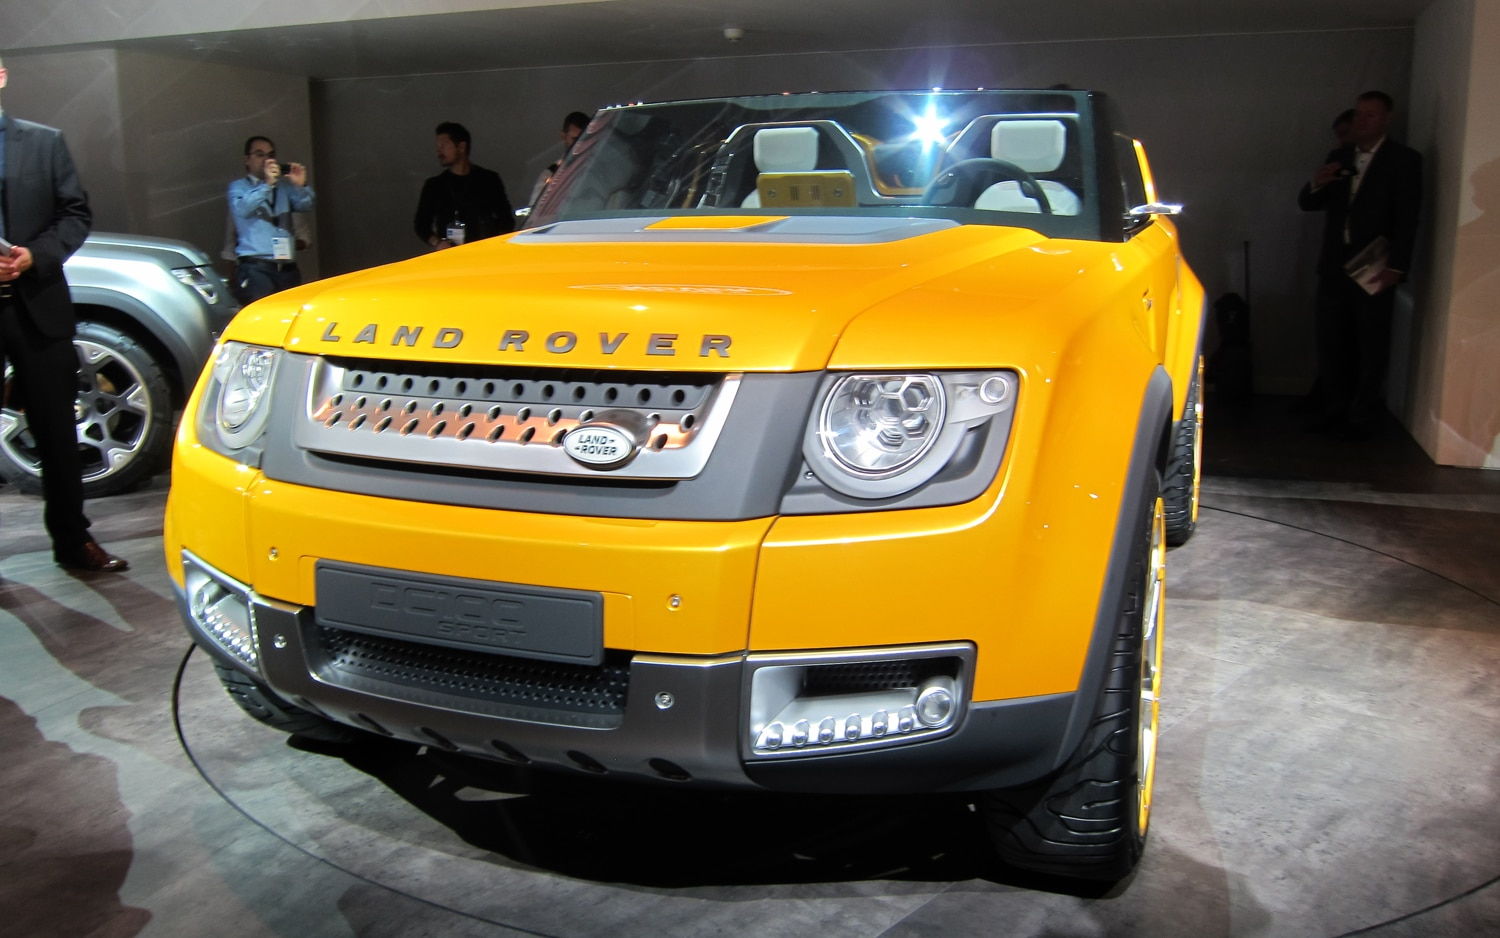 Frankfurt 2011: Land Rover DC100 and DC 100 Sport Concepts